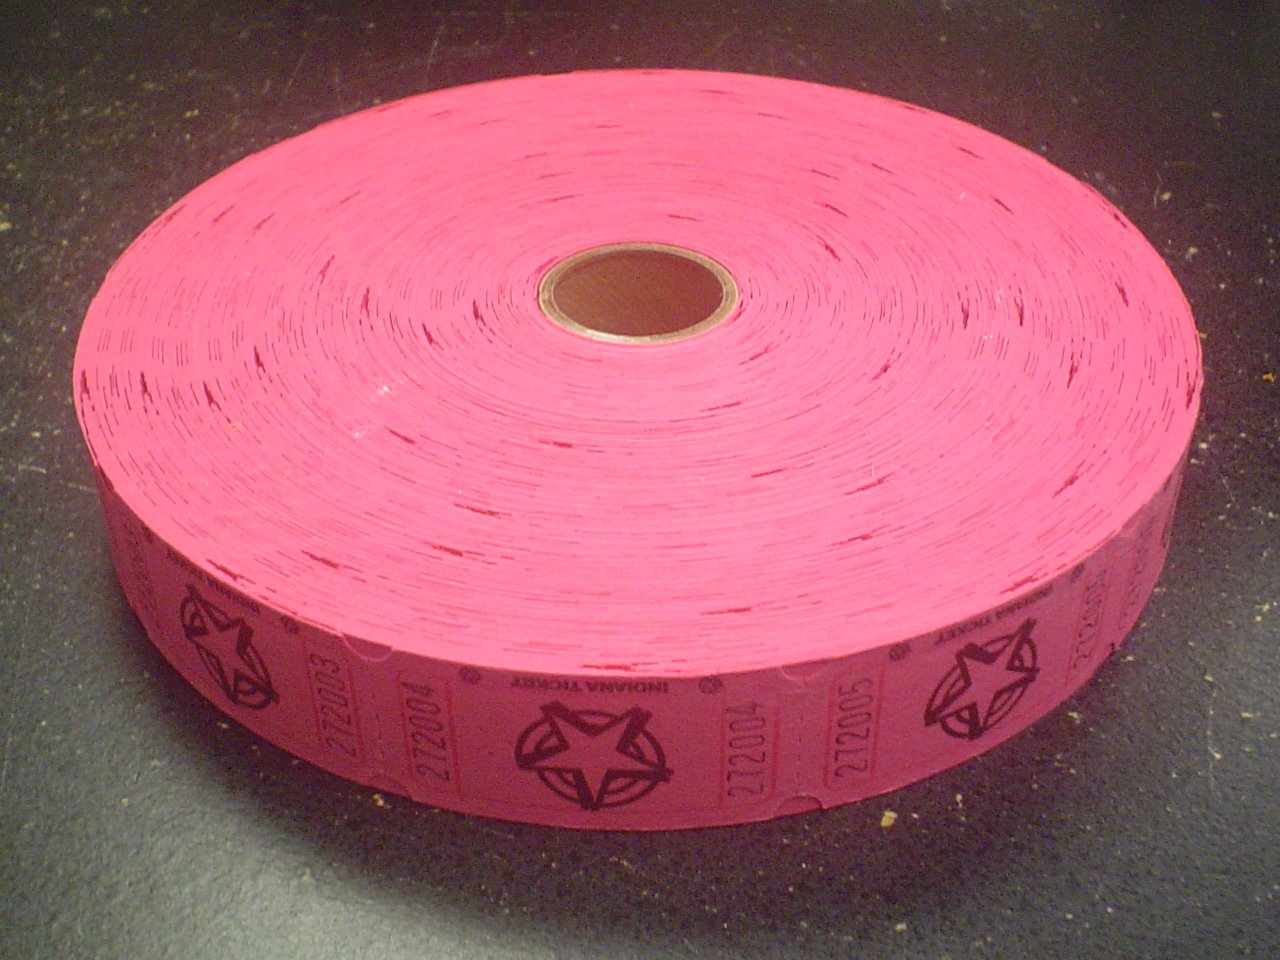 1 X 2000 Hot Pink Star Single Roll Consecutively Numbered Raffle Tickets